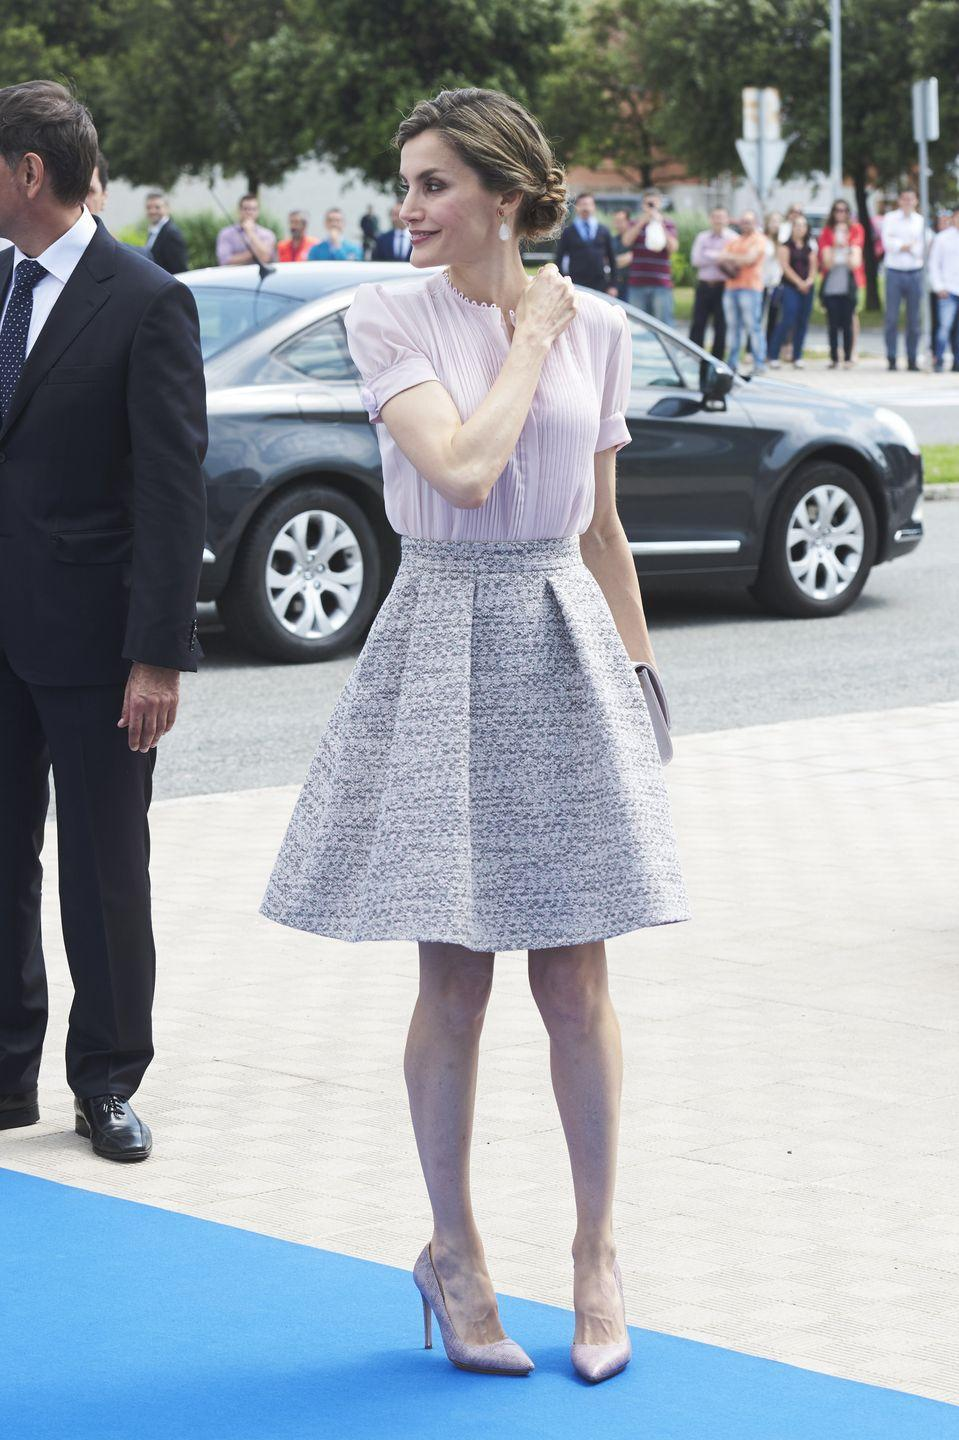 <p>She's an avid supporter of Spanish labels, such as couturier Felipe Varela and fast-fashion brands like Zara and Mango. Her skirt here, which she's worn before, is from Boss.</p>